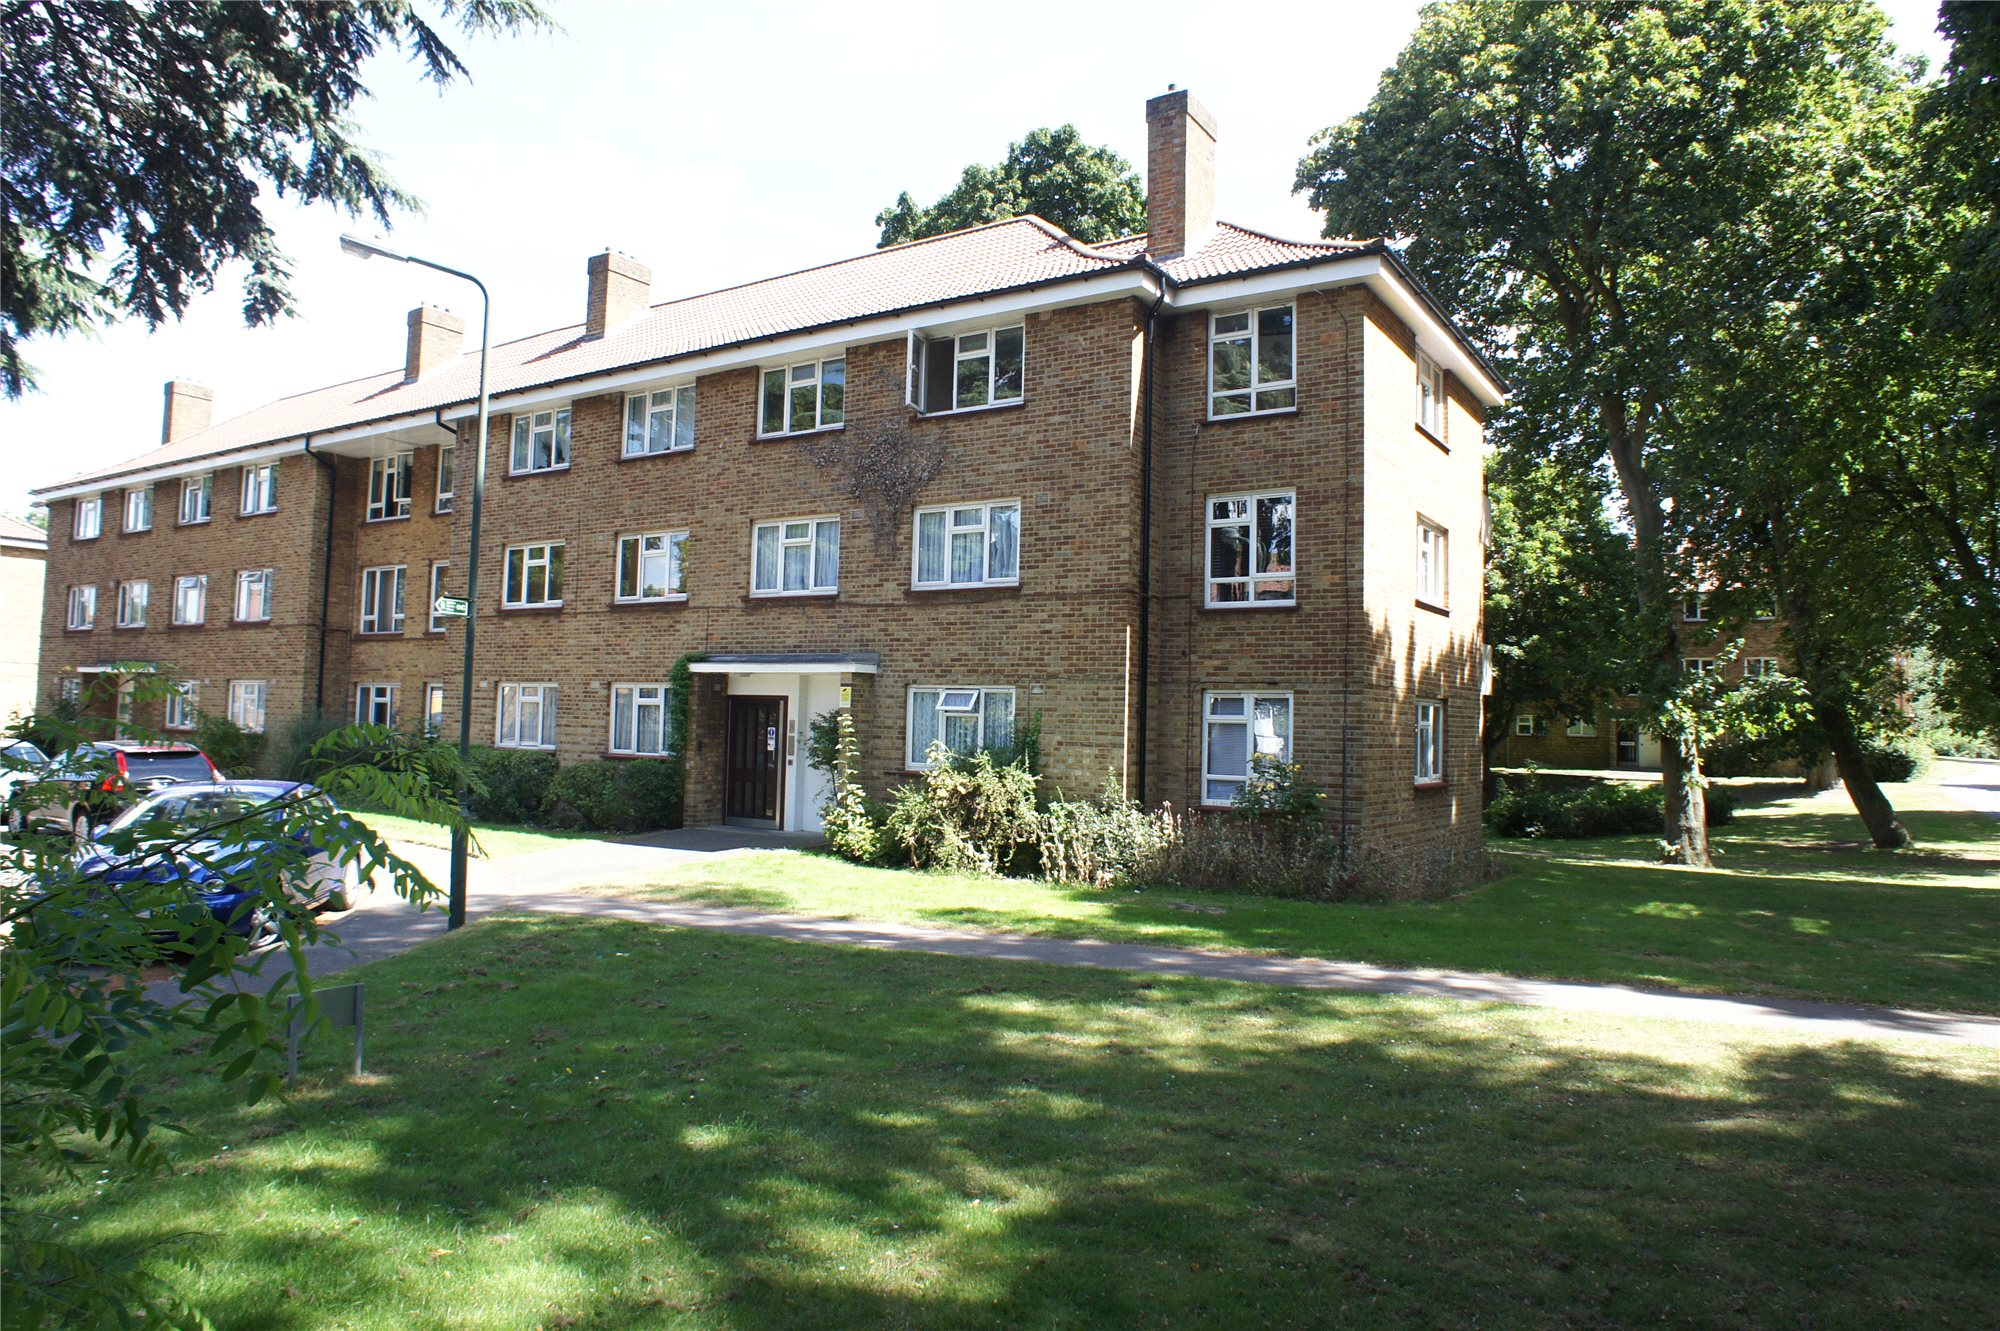 Hurst House, Hurst Lane, Abbey Wood, London, SE2